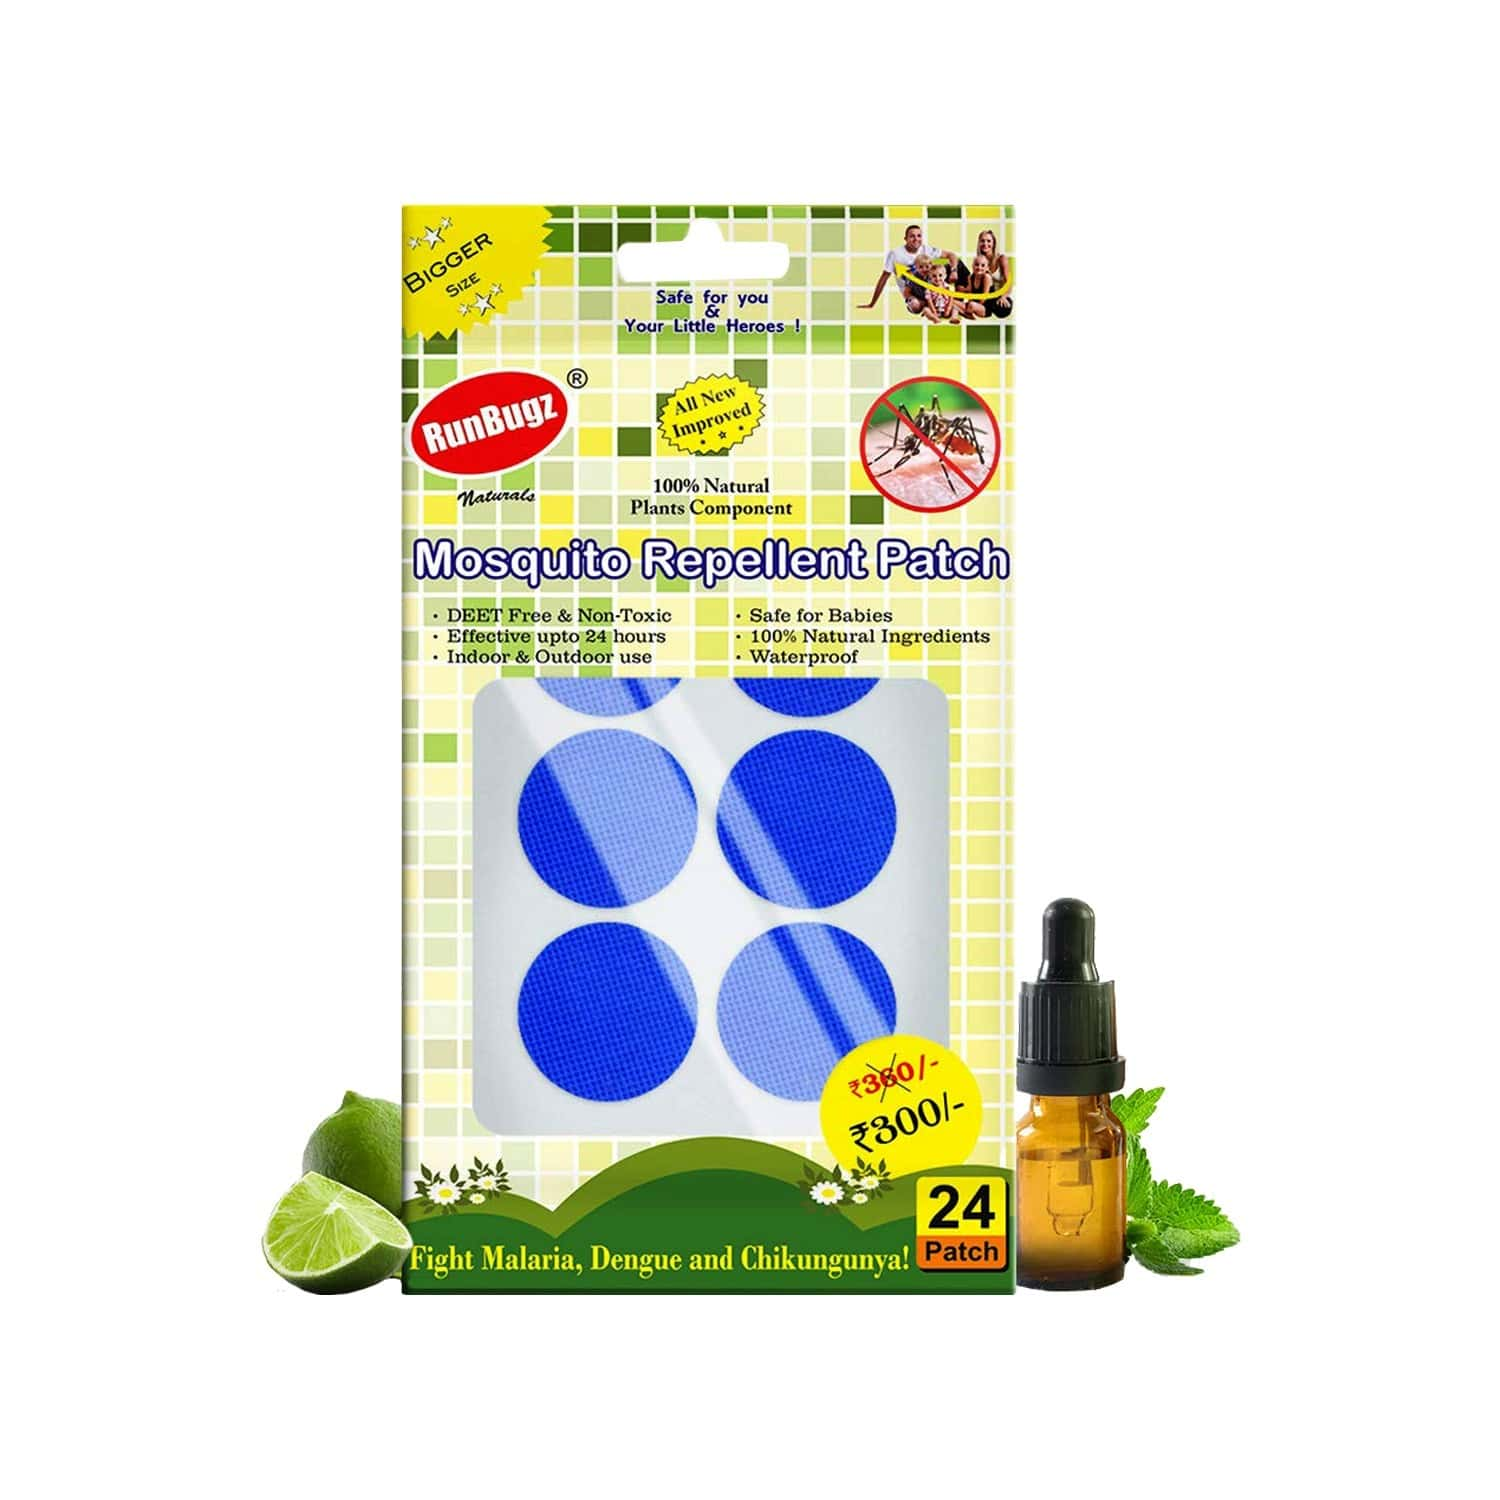 Mosquito Repellent Patches, Anti Mosquito Patch, 24 Patches - Blue